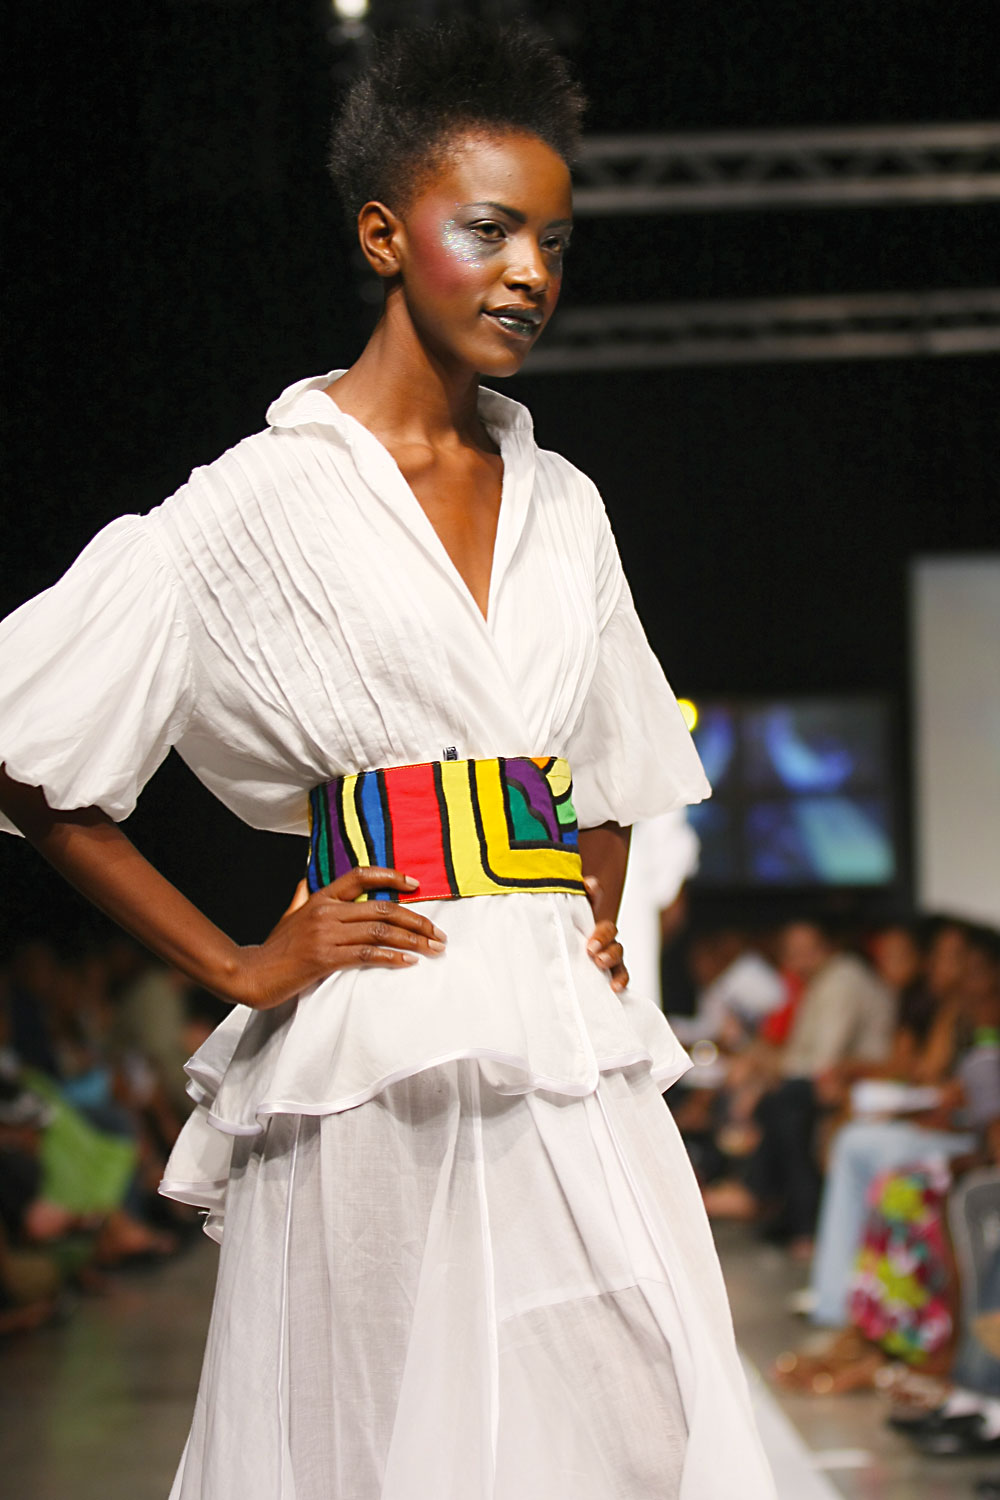 Oreintha Russell in a satin voile tucked blouse with puff sleeves, toucan appliquéd belt and full skirt. Photograph courtesy Caribbean Fashion Week